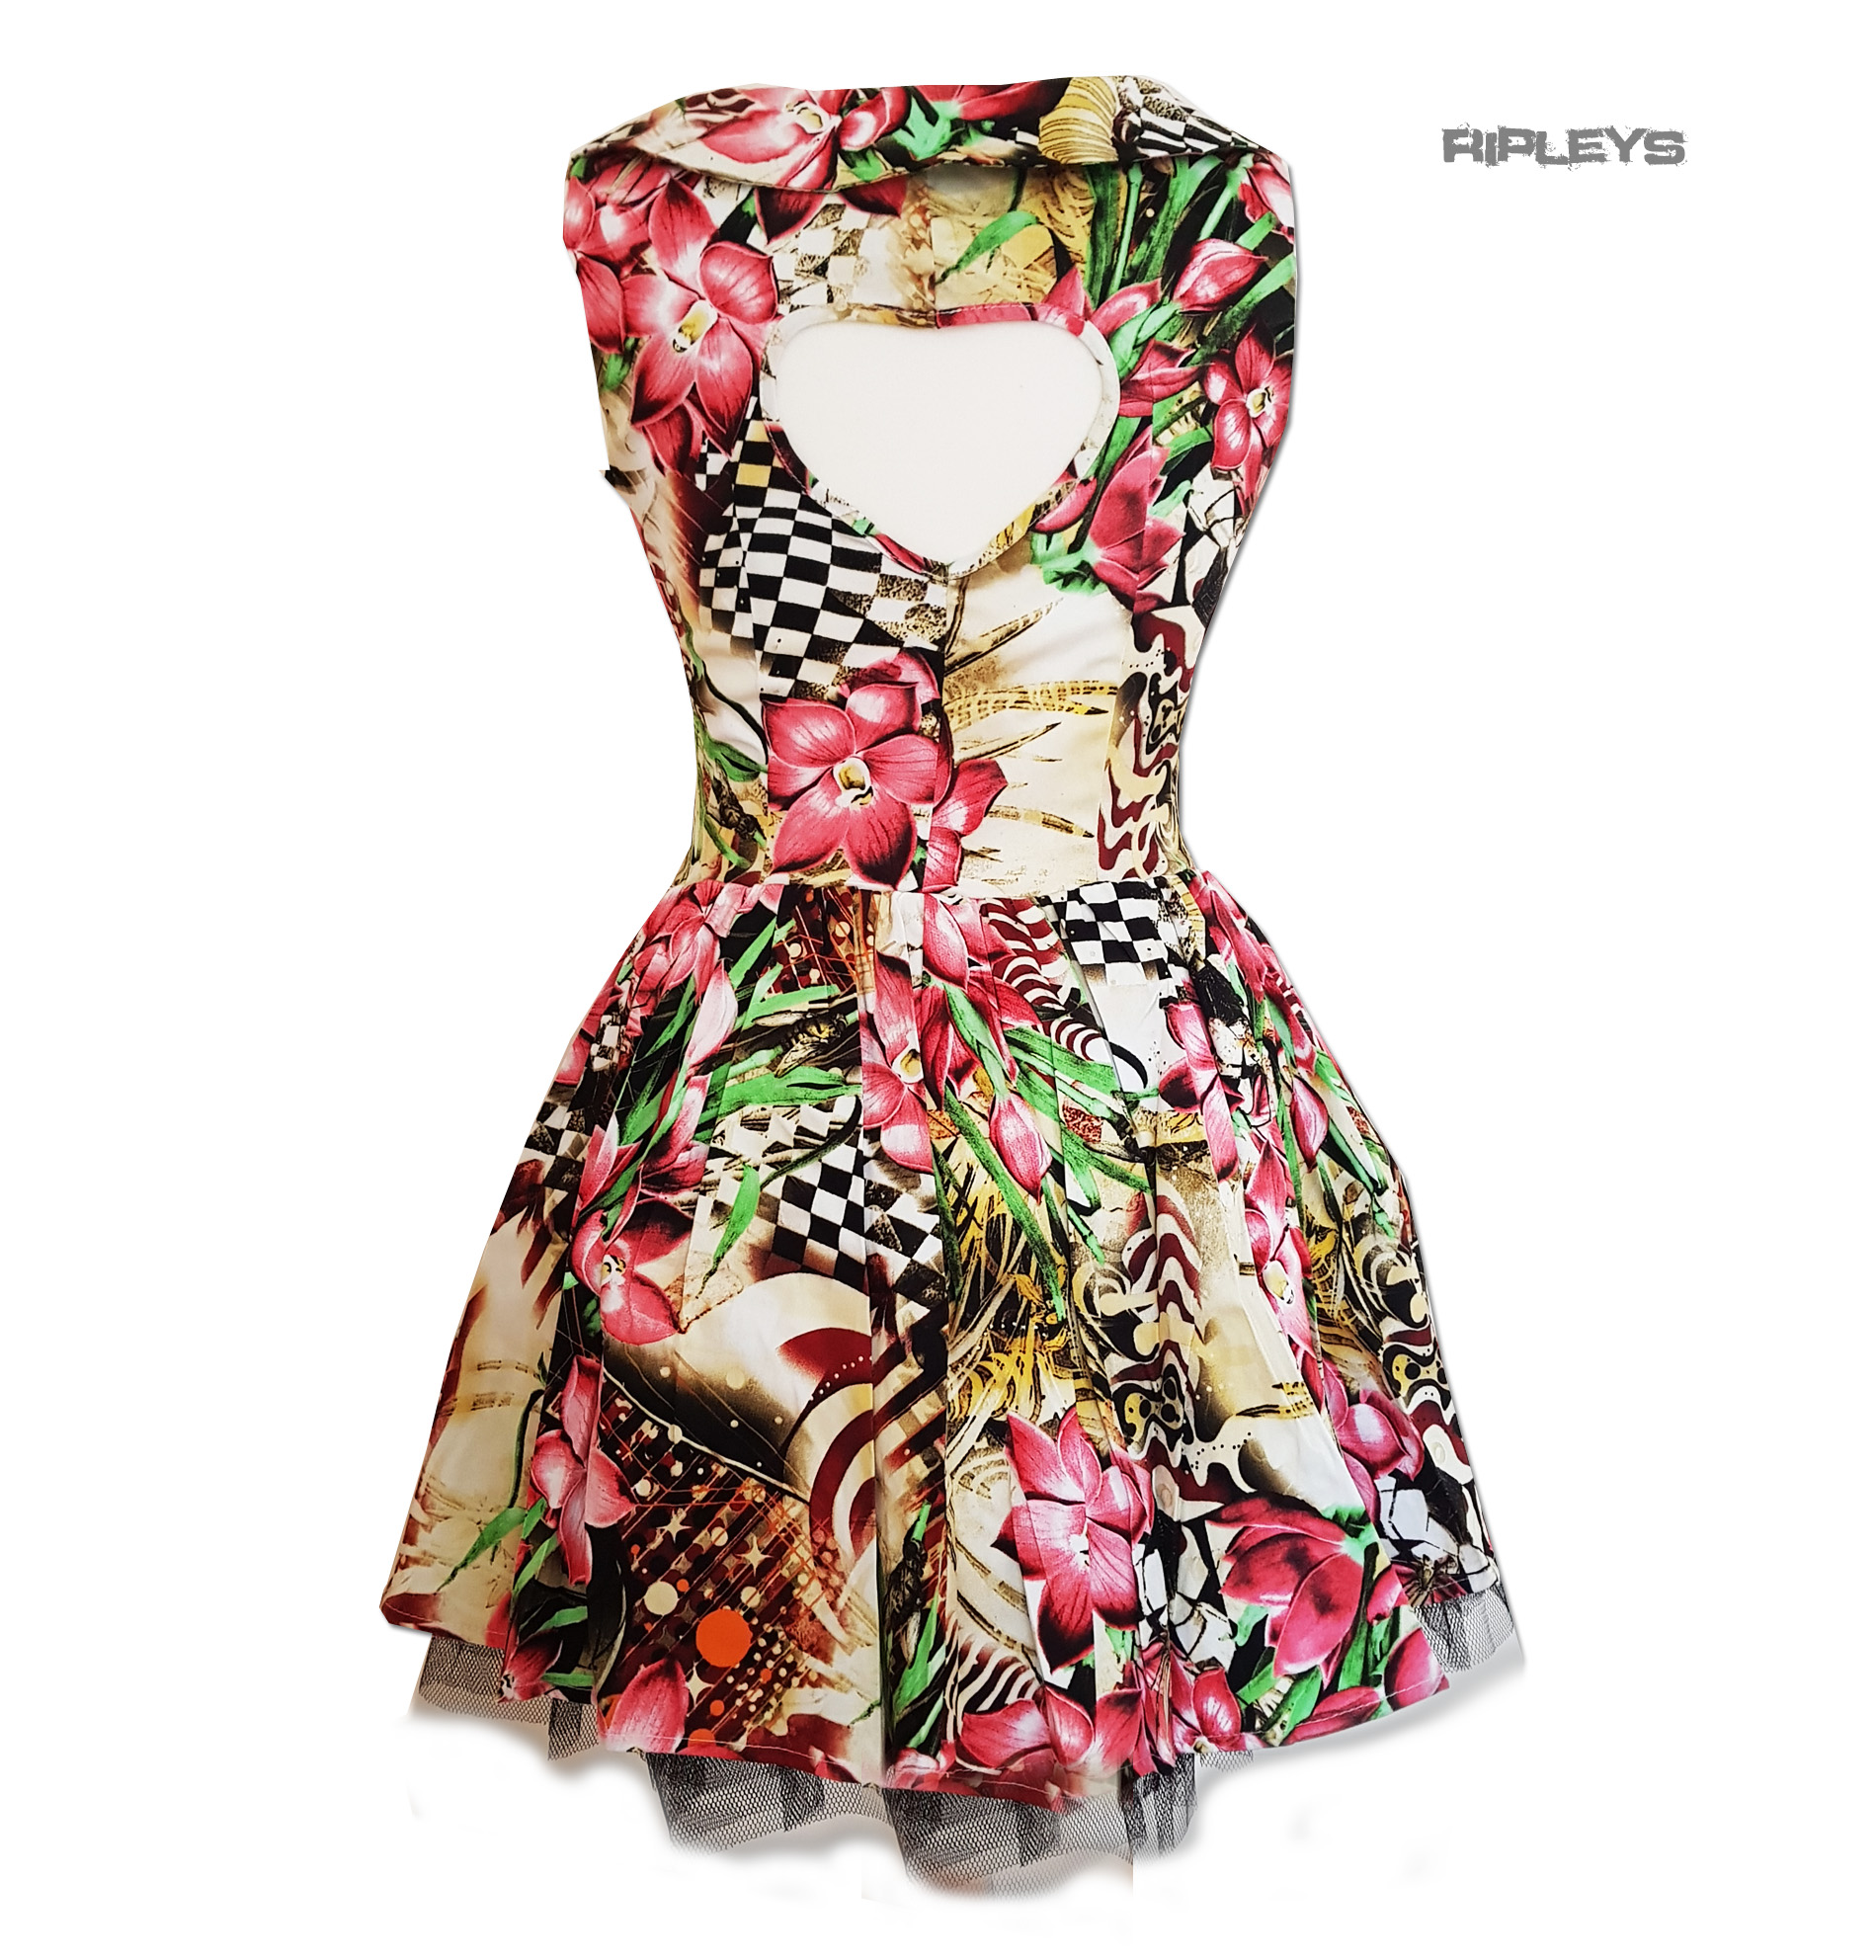 H-amp-R-Hearts-amp-Roses-London-Pink-Mini-Dress-039-Lily-Checkerboard-039-Flowers-All-Sizes thumbnail 20